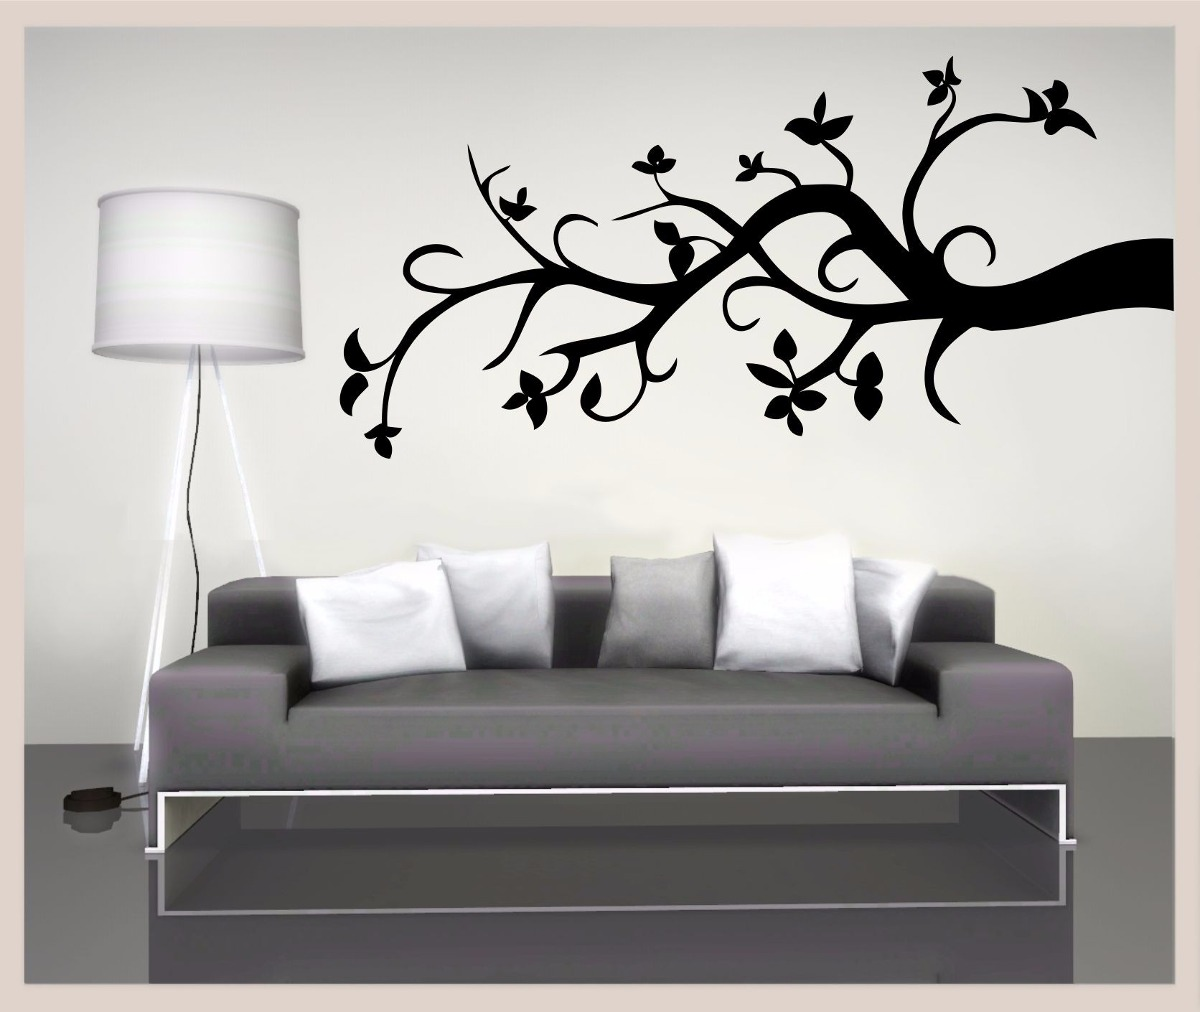 Vinilo Decorativo Pared Vinilo Decorativo Arbol Y Rama Decoracion De Paredes S